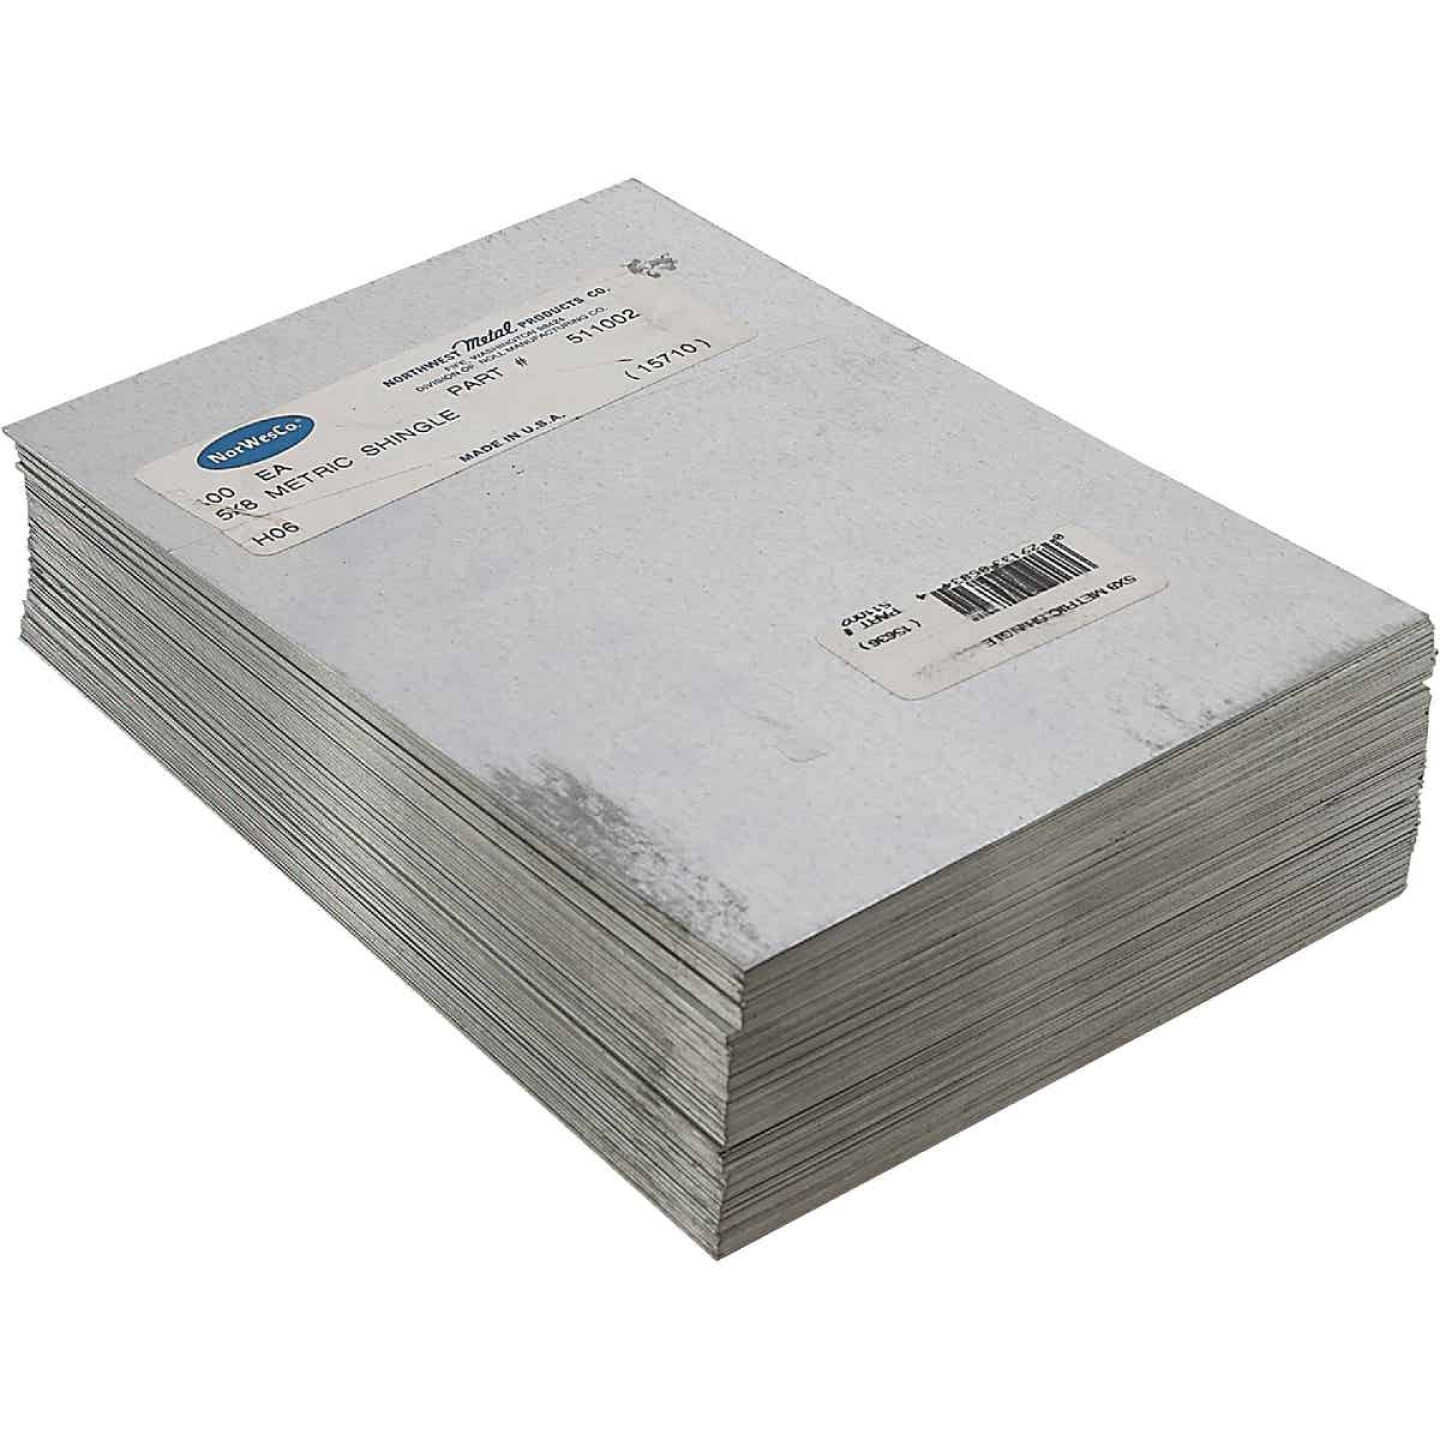 NorWesco 8 In. x 12 In. Mill Galvanized Step Flashing Shingle Image 3